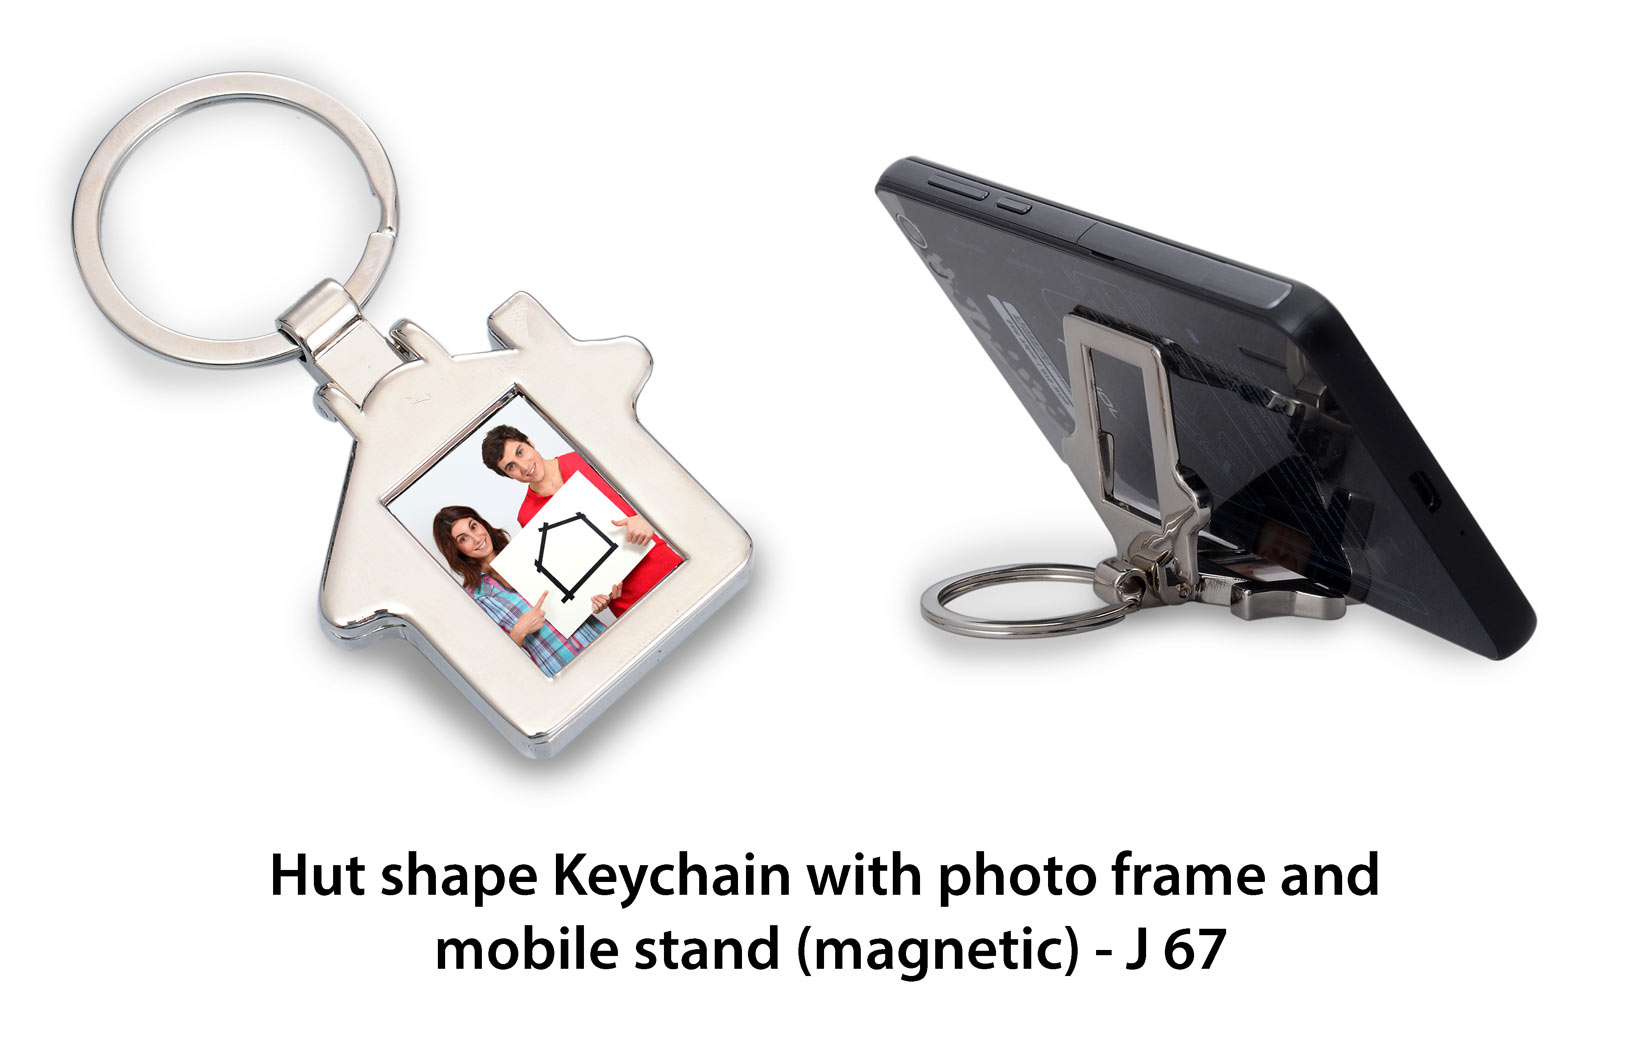 J67 - Hut shape Keychain with photo frame and mobile stand (magnetic)